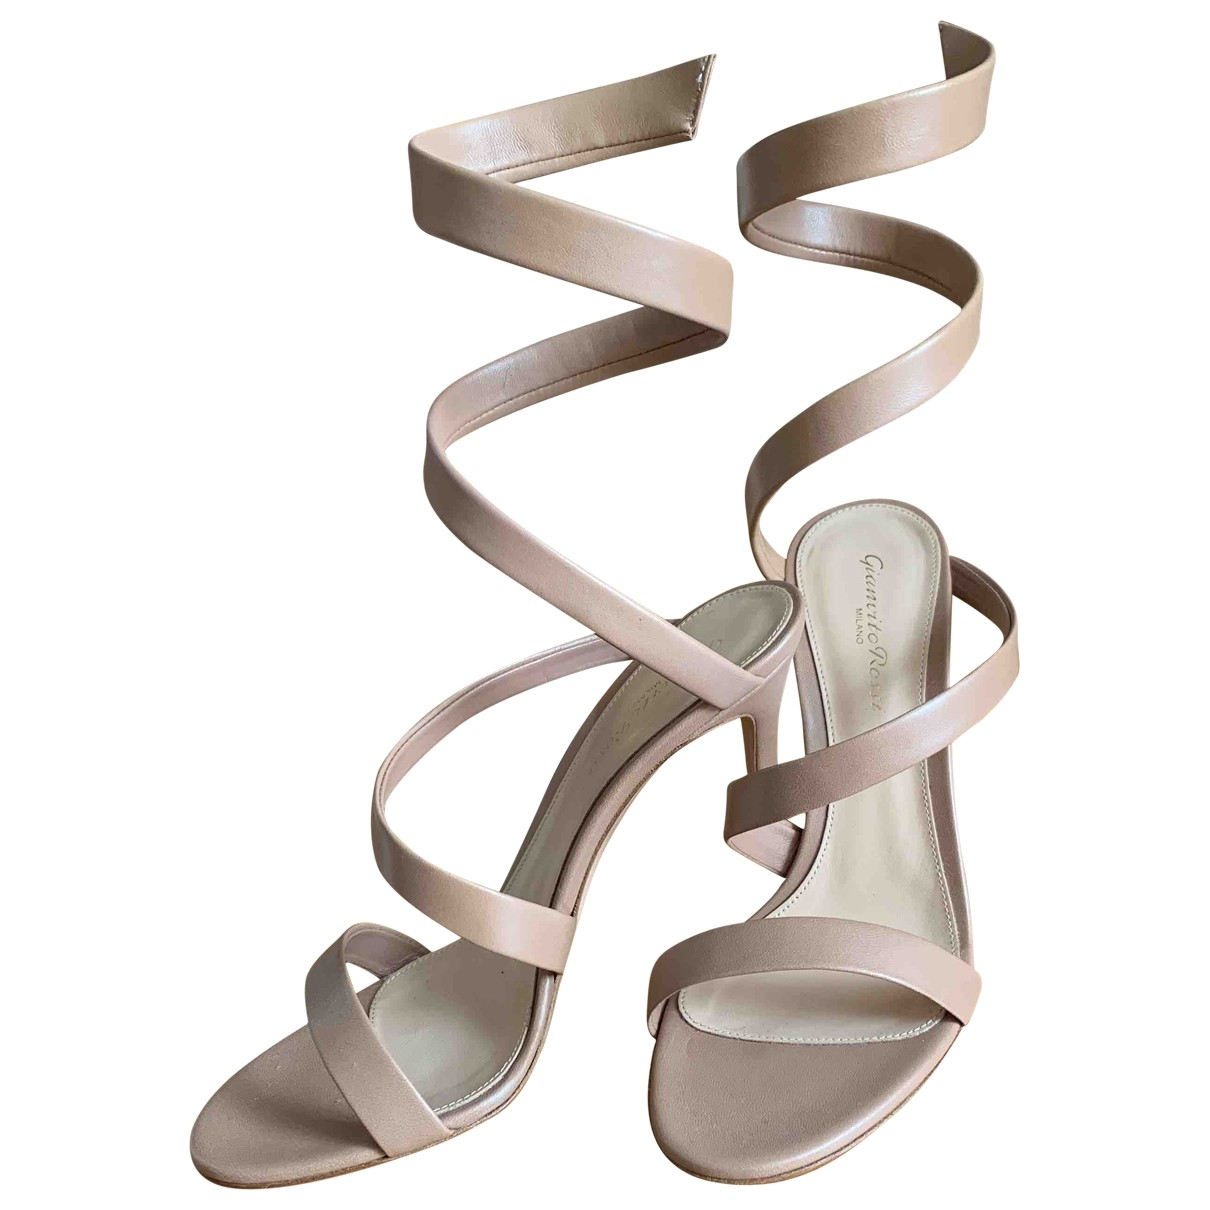 Gianvito Rossi \N Beige Leather Sandals for Women 38.5 EU